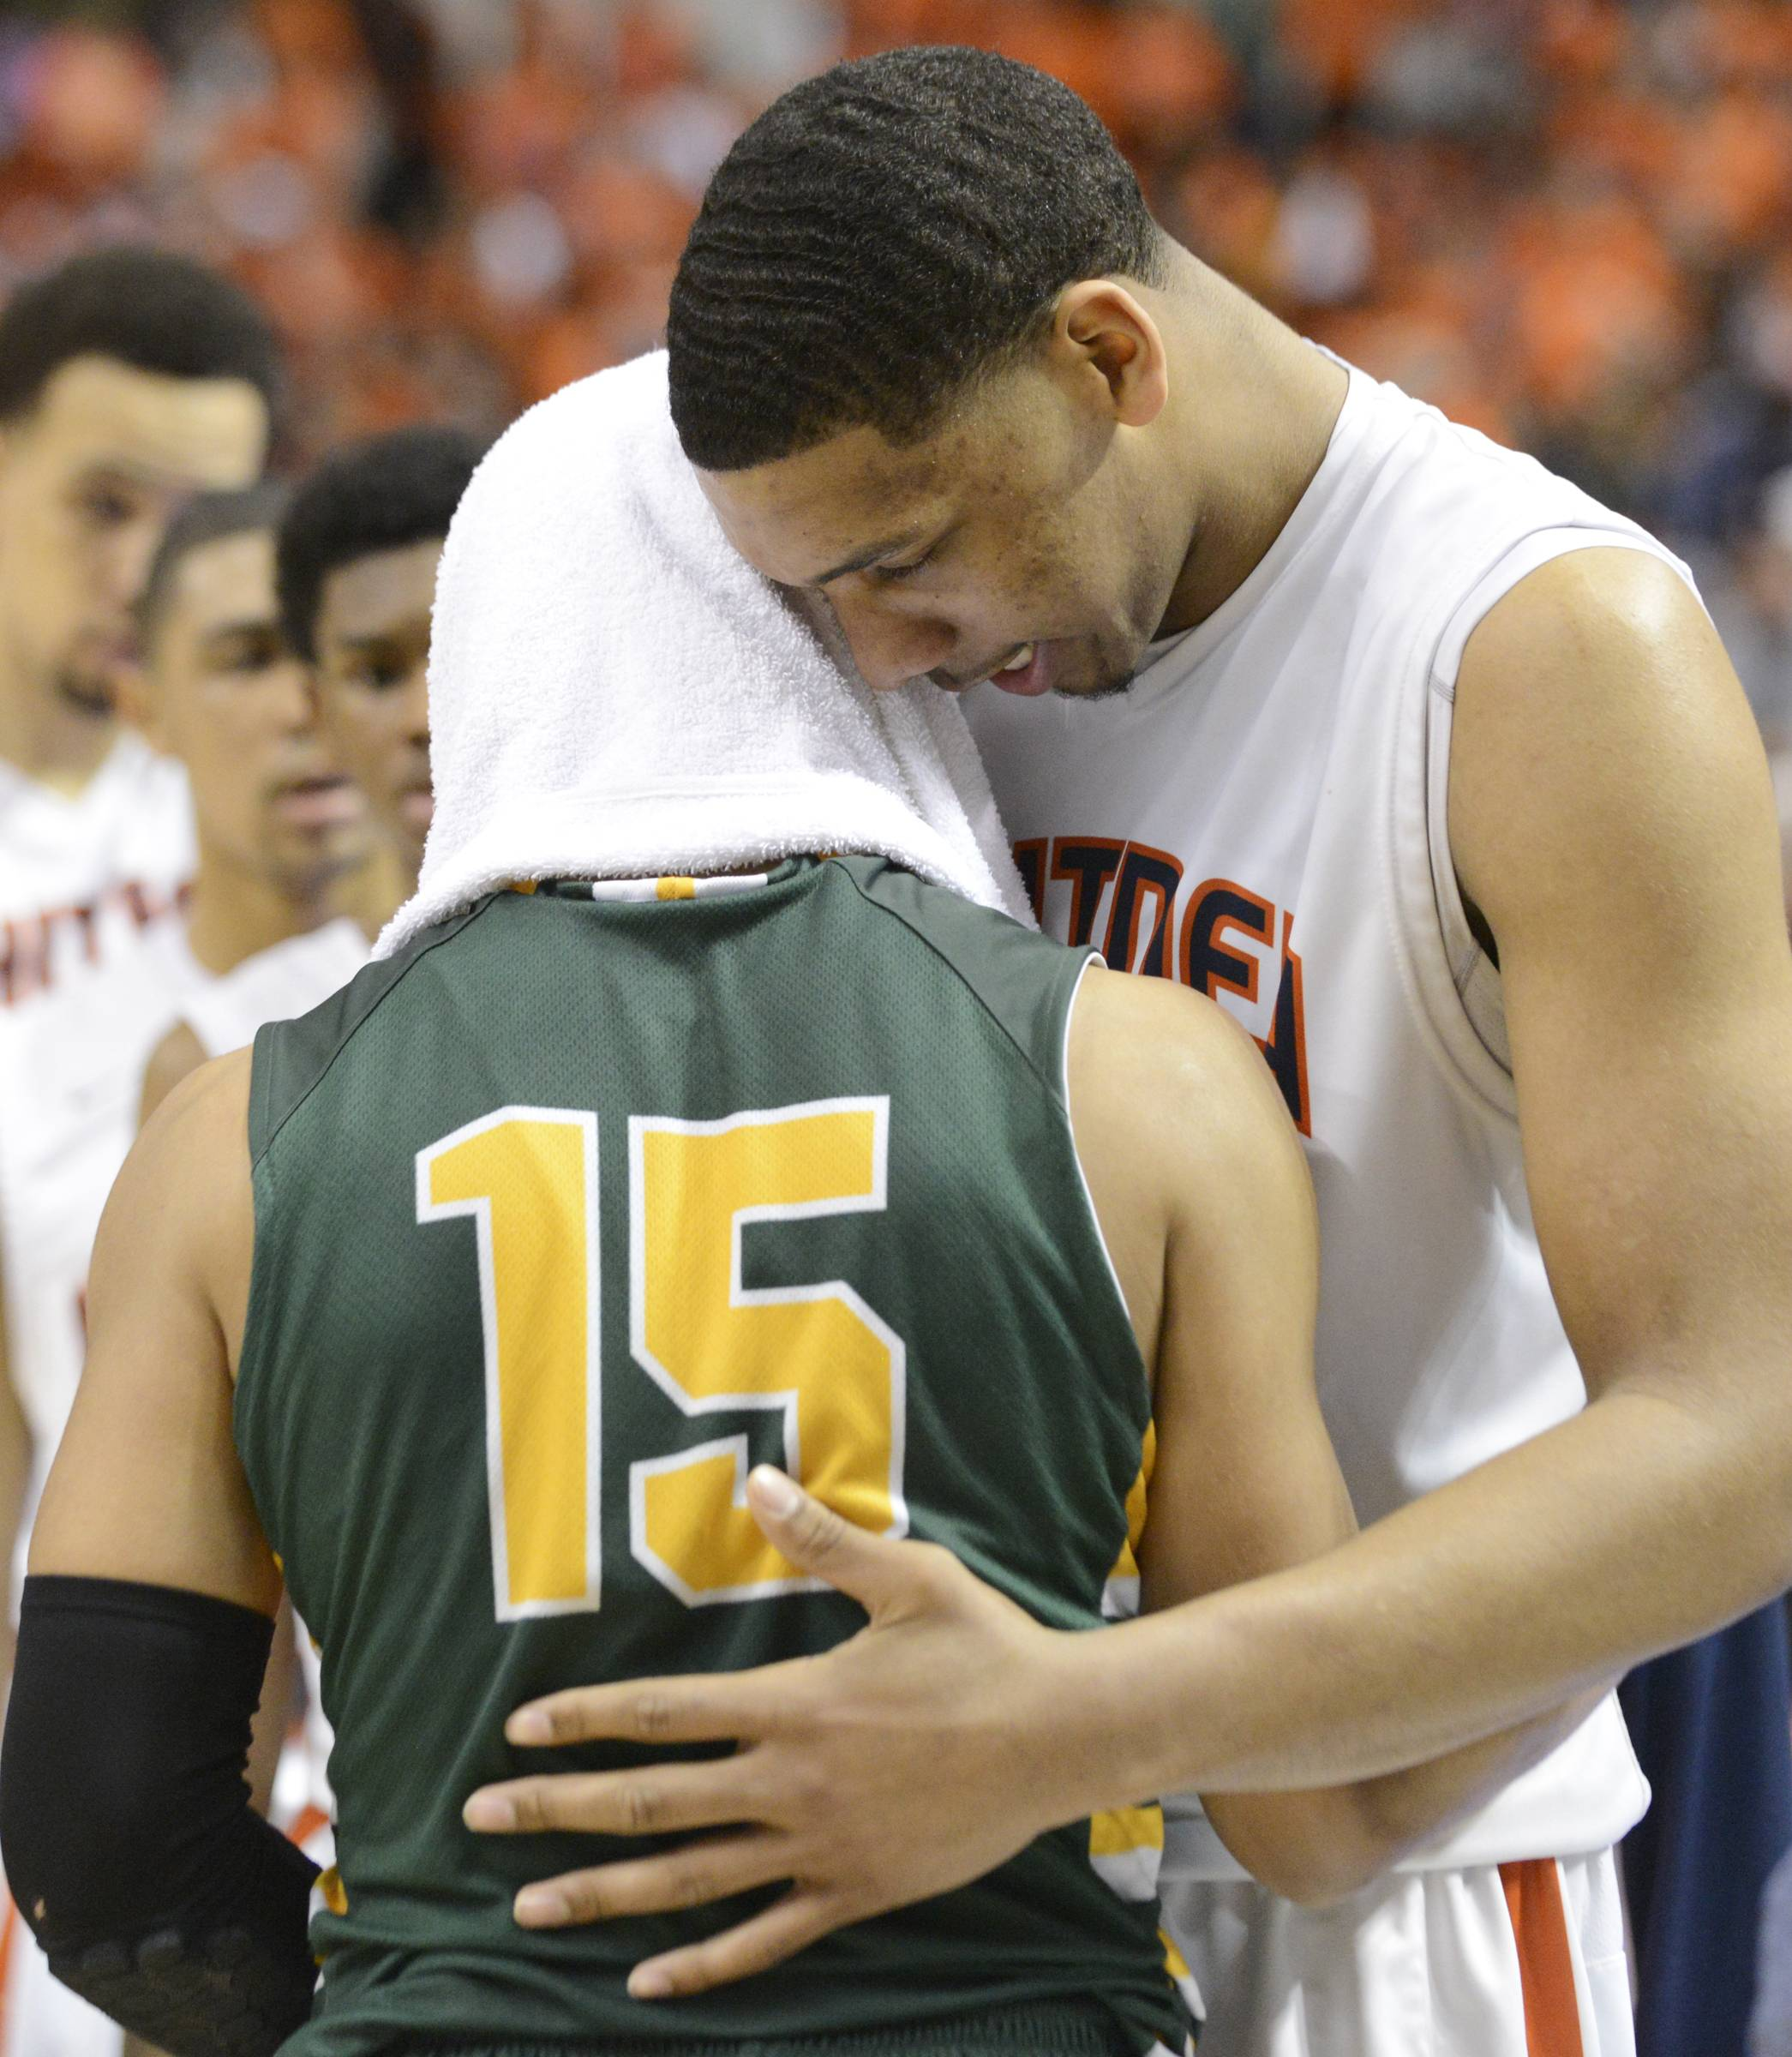 Stevenson's Jalen Brunson and Whitney Young's Jahlil Okafor, right, talk after the game.